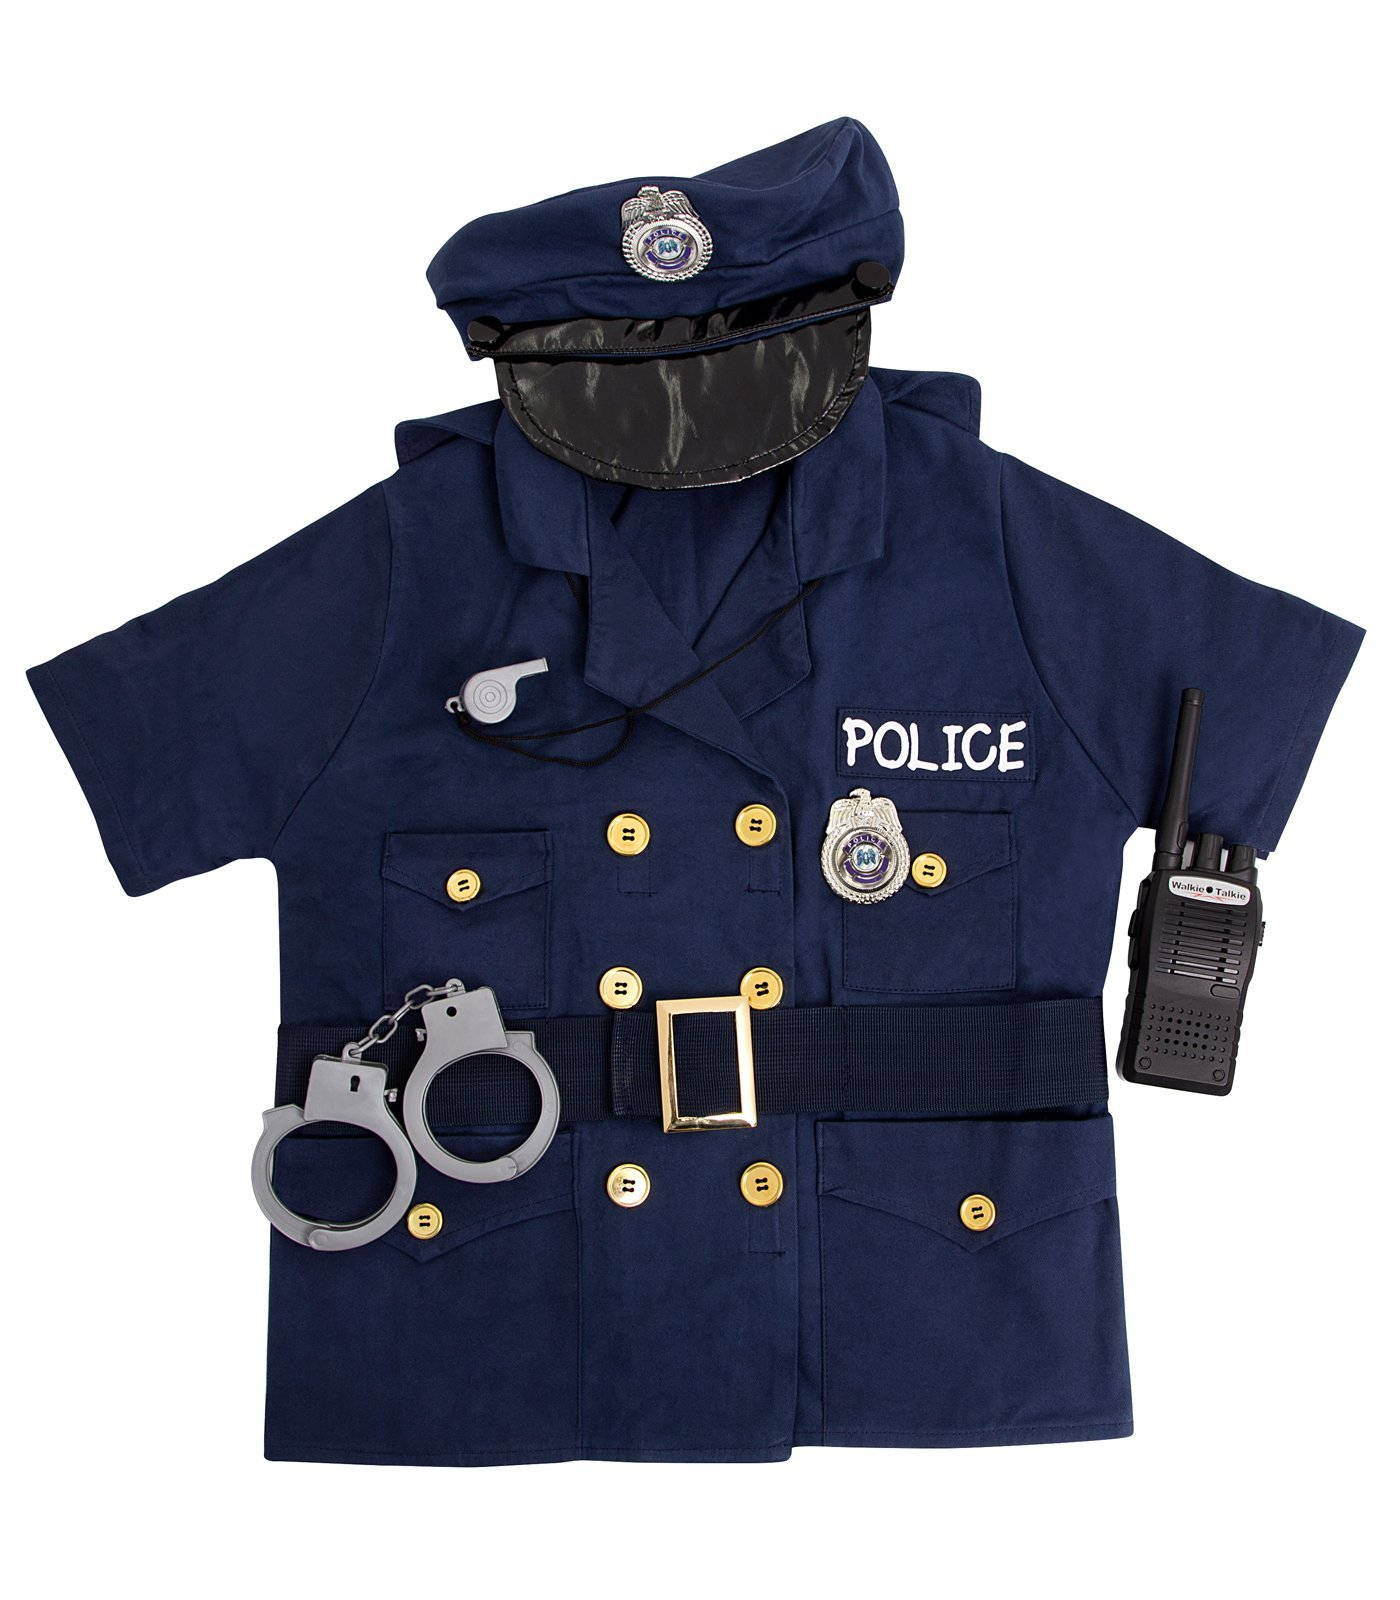 FAO Schwarz 5 Piece Police Role Play Costume Includes Shirt,Hat, Belt, Whistle, Handcuffs